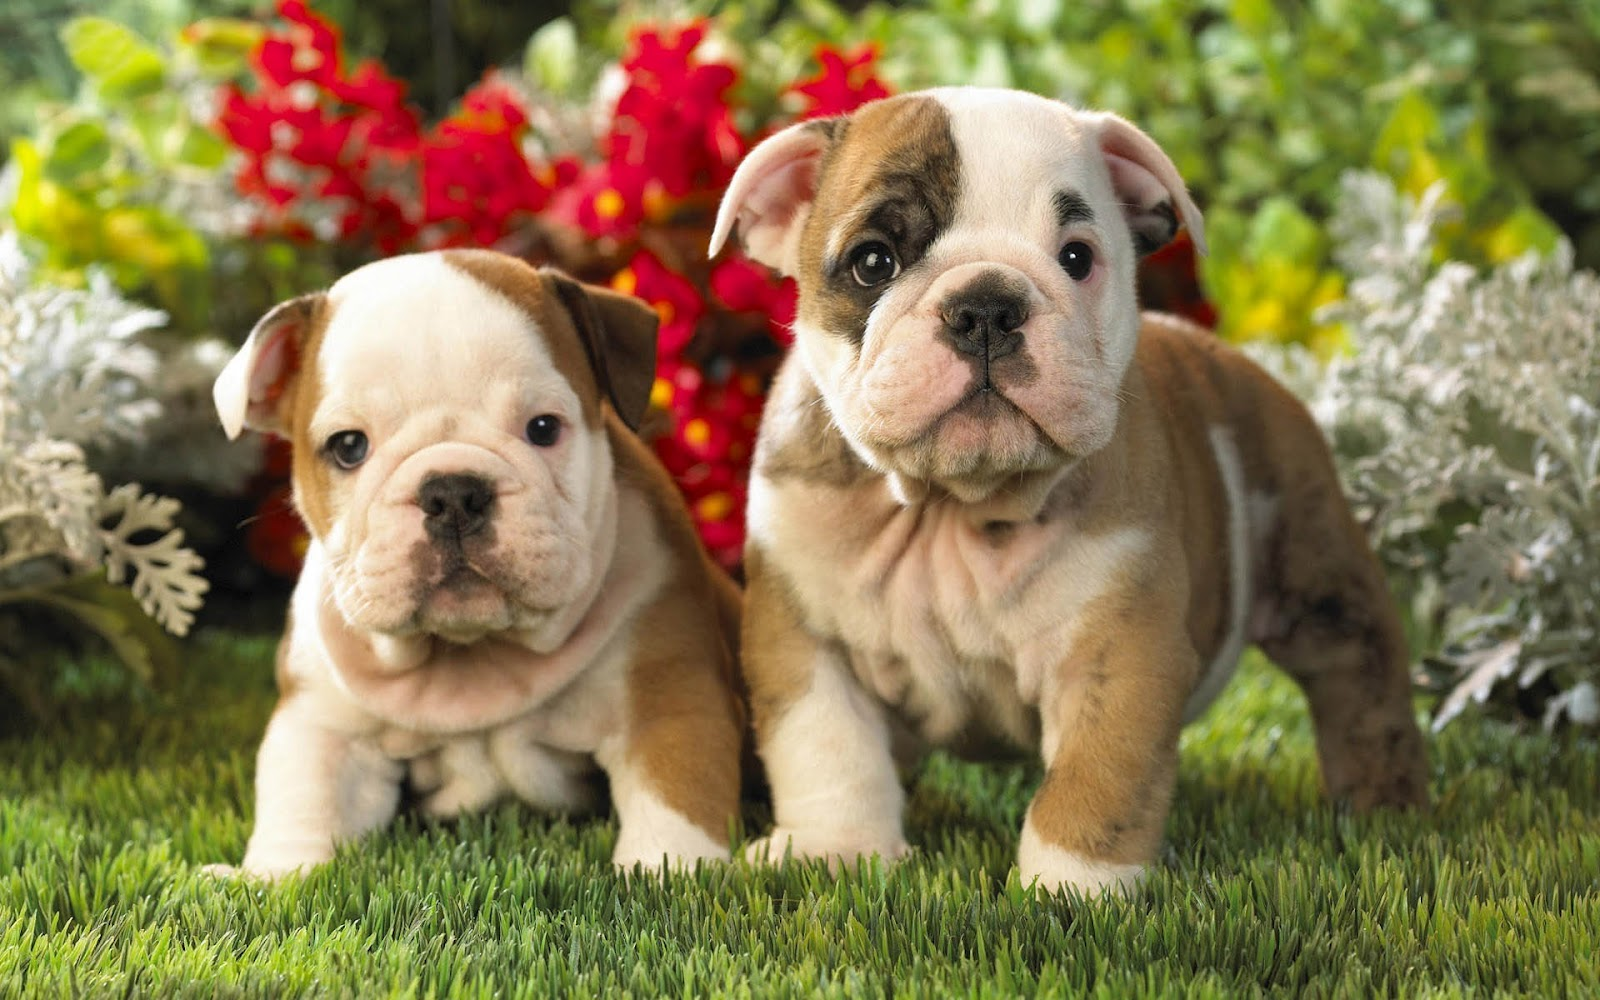 http://1.bp.blogspot.com/-beGB2viJV94/UDfxE6YGH4I/AAAAAAAABC8/qN_aMrFAf9k/s1600/hd-english-bulldog-puppies-hd-dogs-wallpapers-backgrounds-pictures-photos.jpg